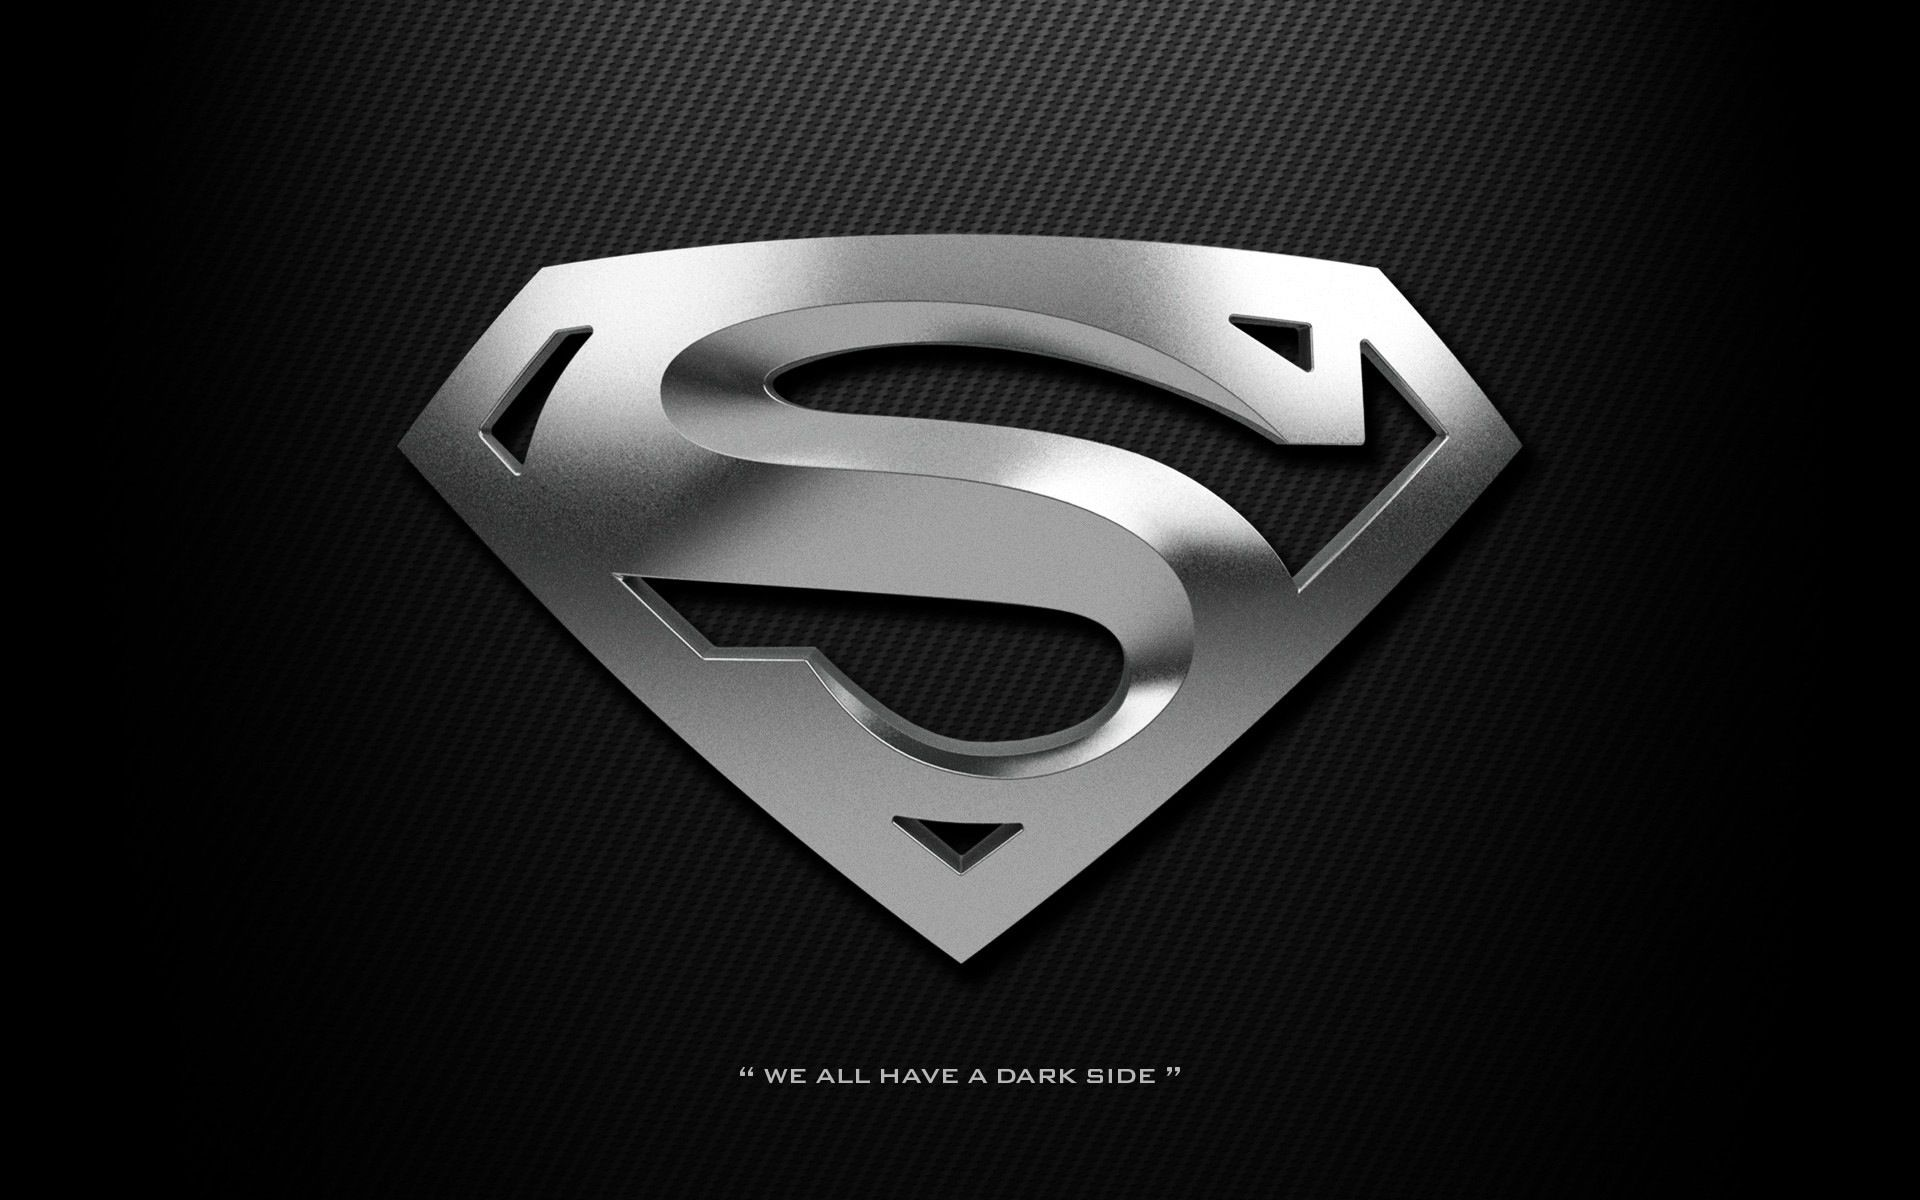 superman superman superman wallpaper superman superman logo